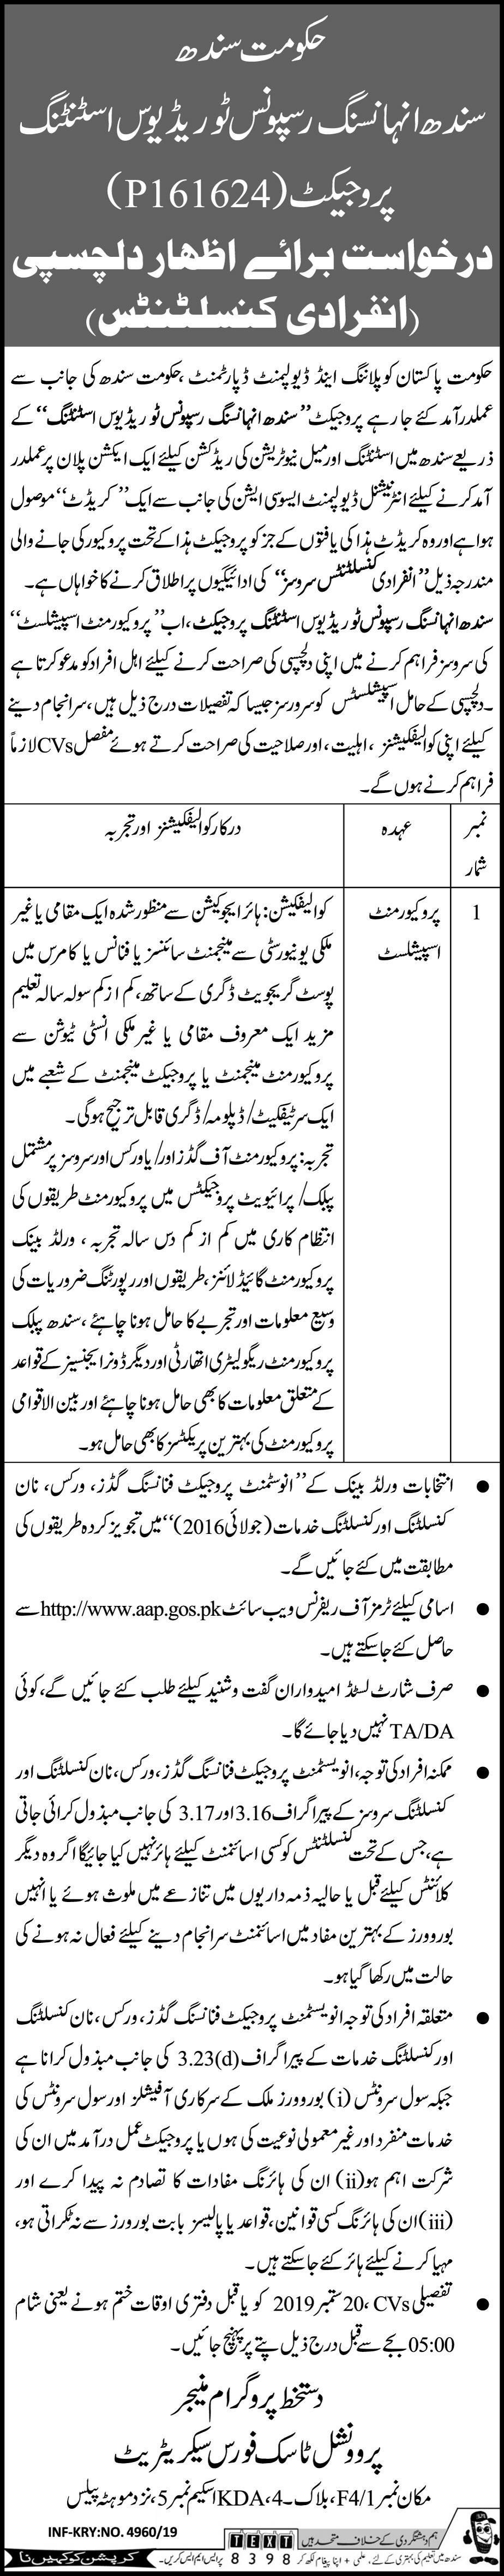 Planning And Development Department 05 Sep 2019 -Jobs In